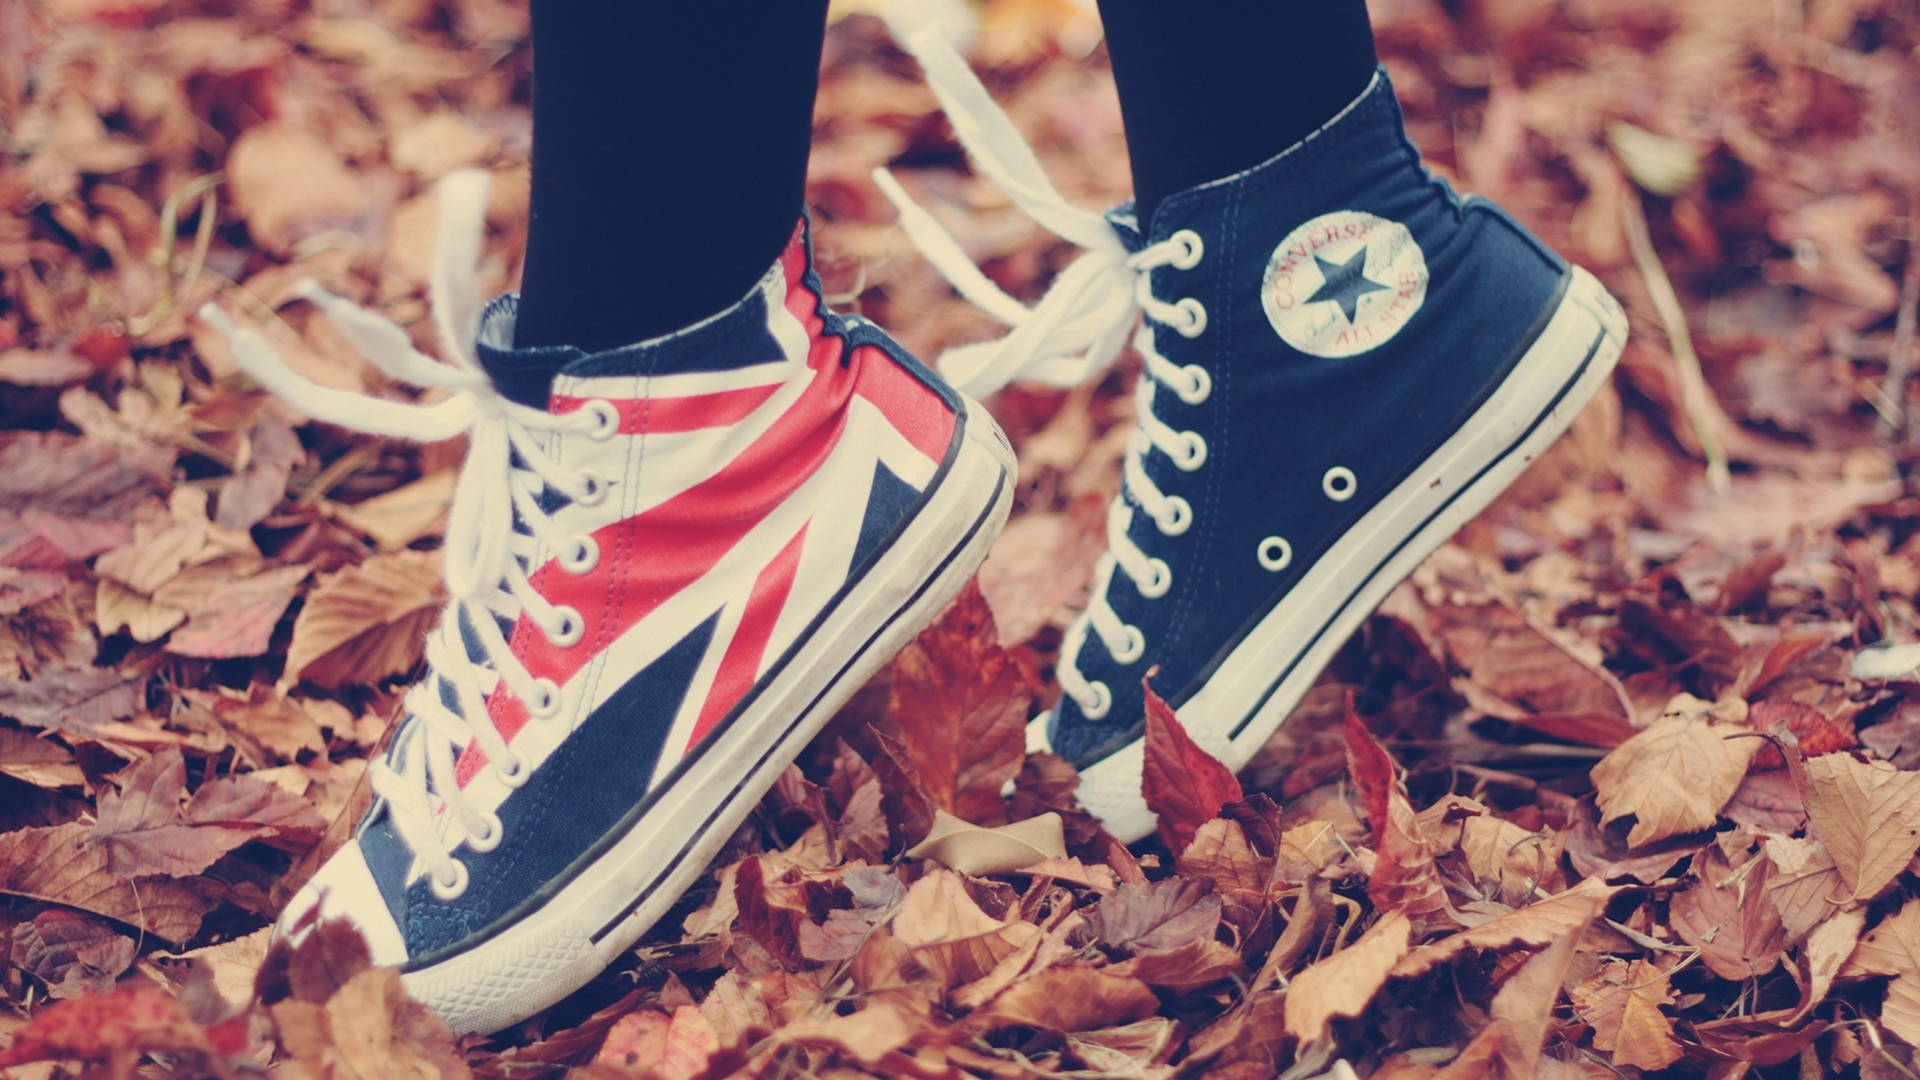 Download Wallpaper 1920x1080 Shoes Sneakers Converse Style Fall